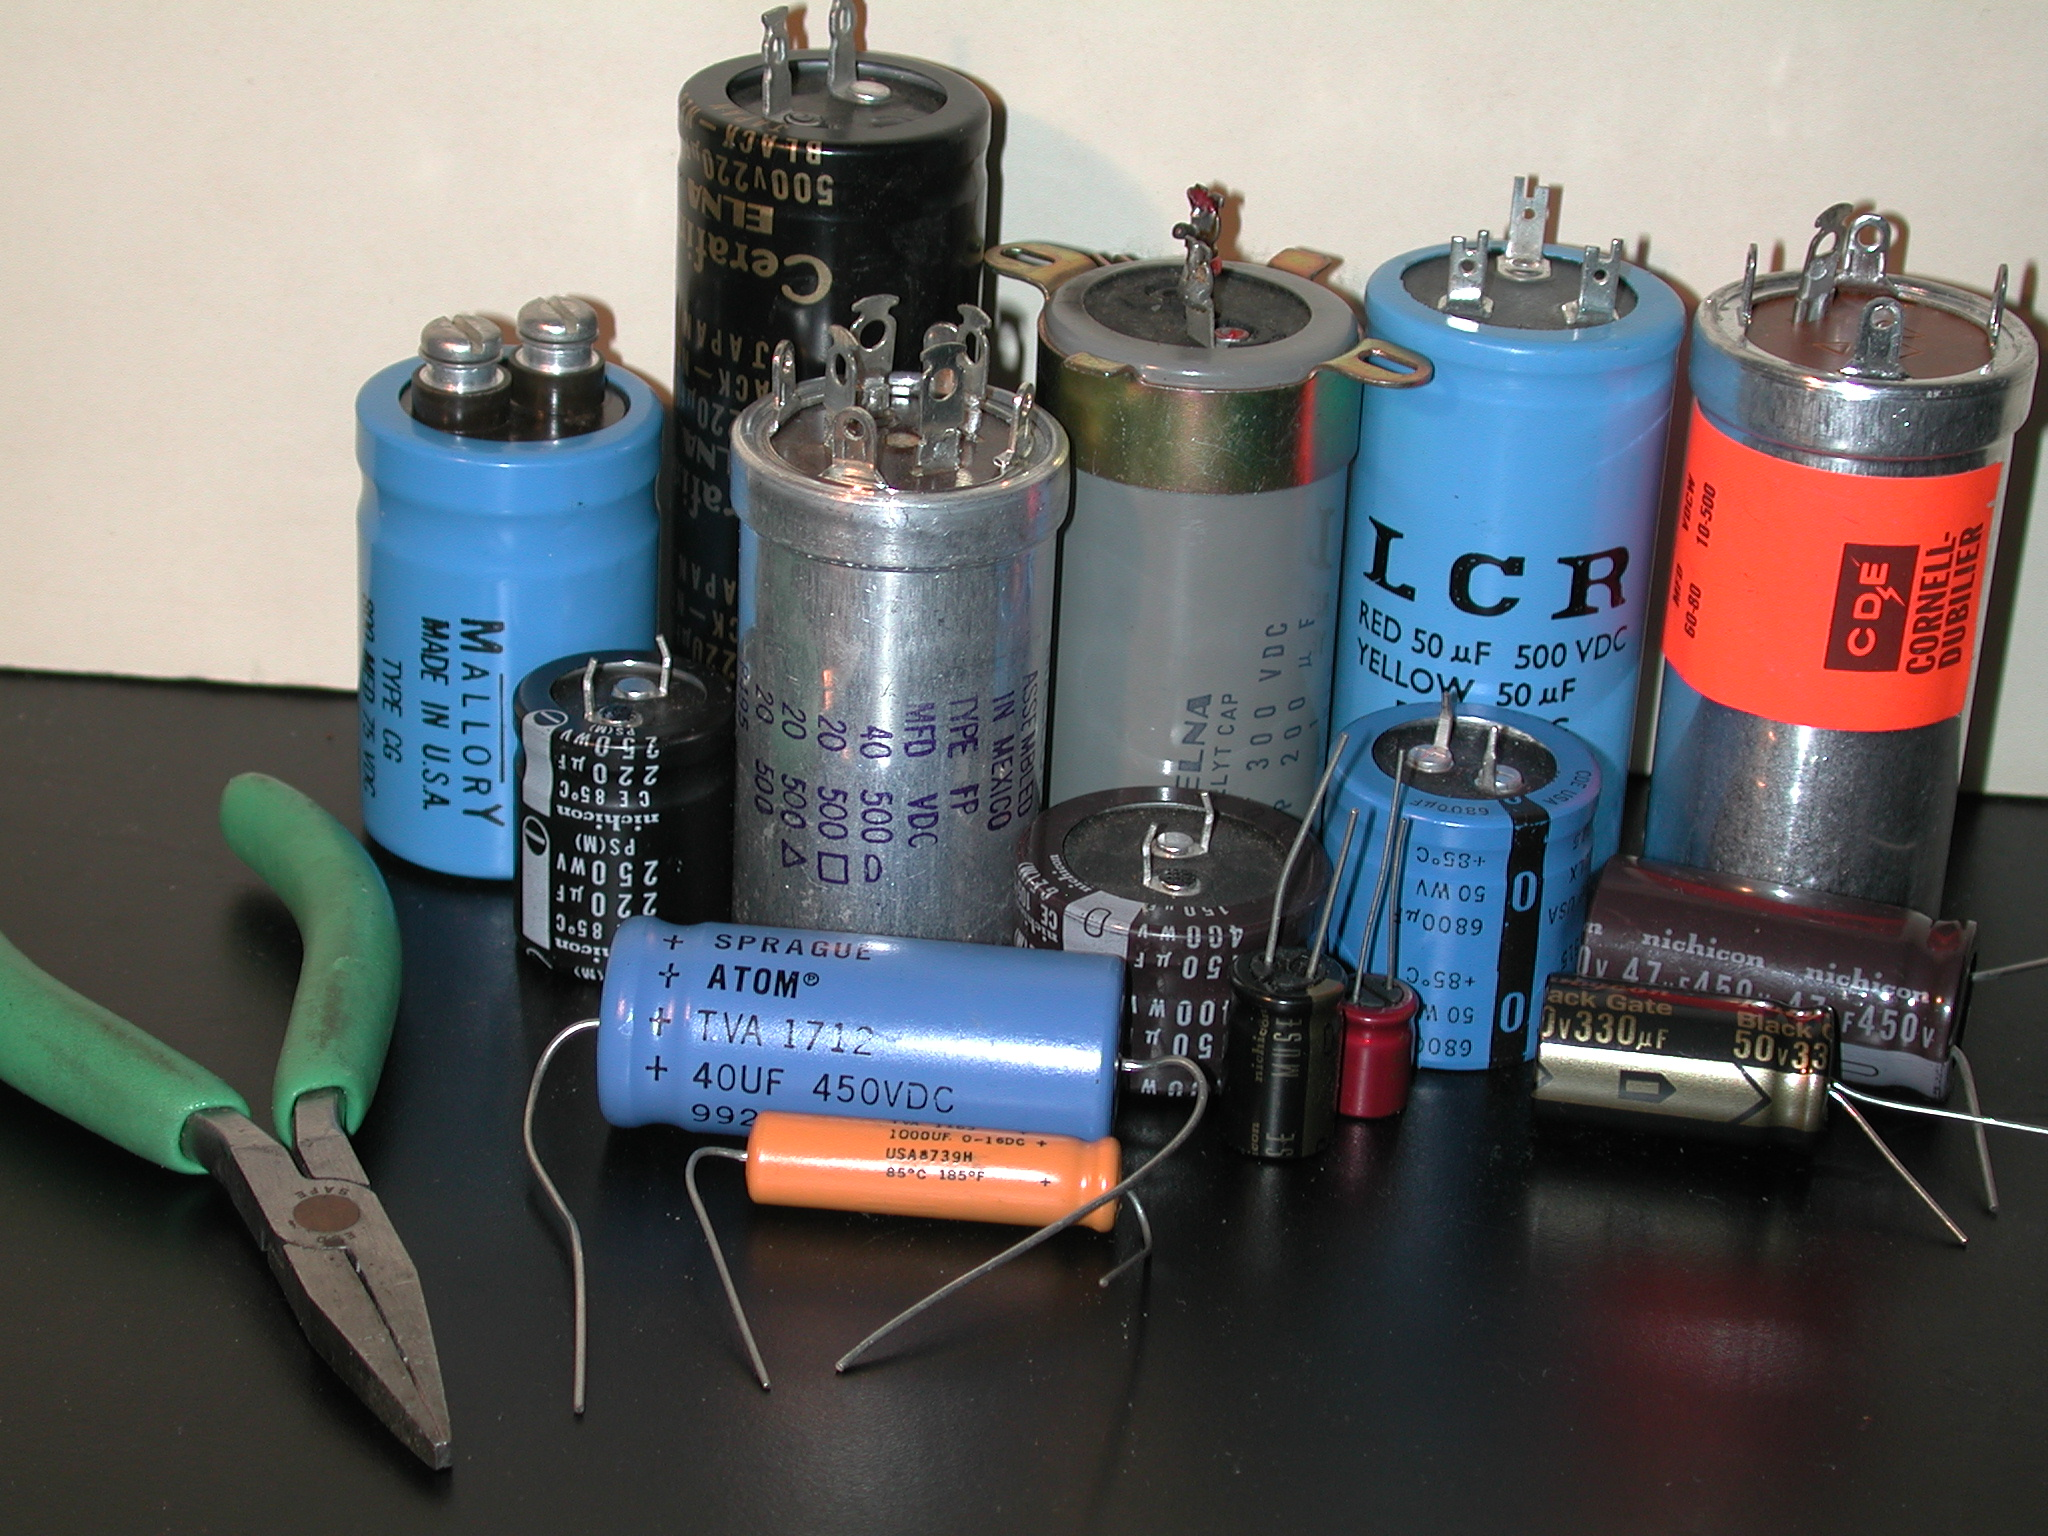 Rap On Replacing Electrolytic Capacitors Voltage Electronic Snap Circuits Wiki Whats Available For Repairs